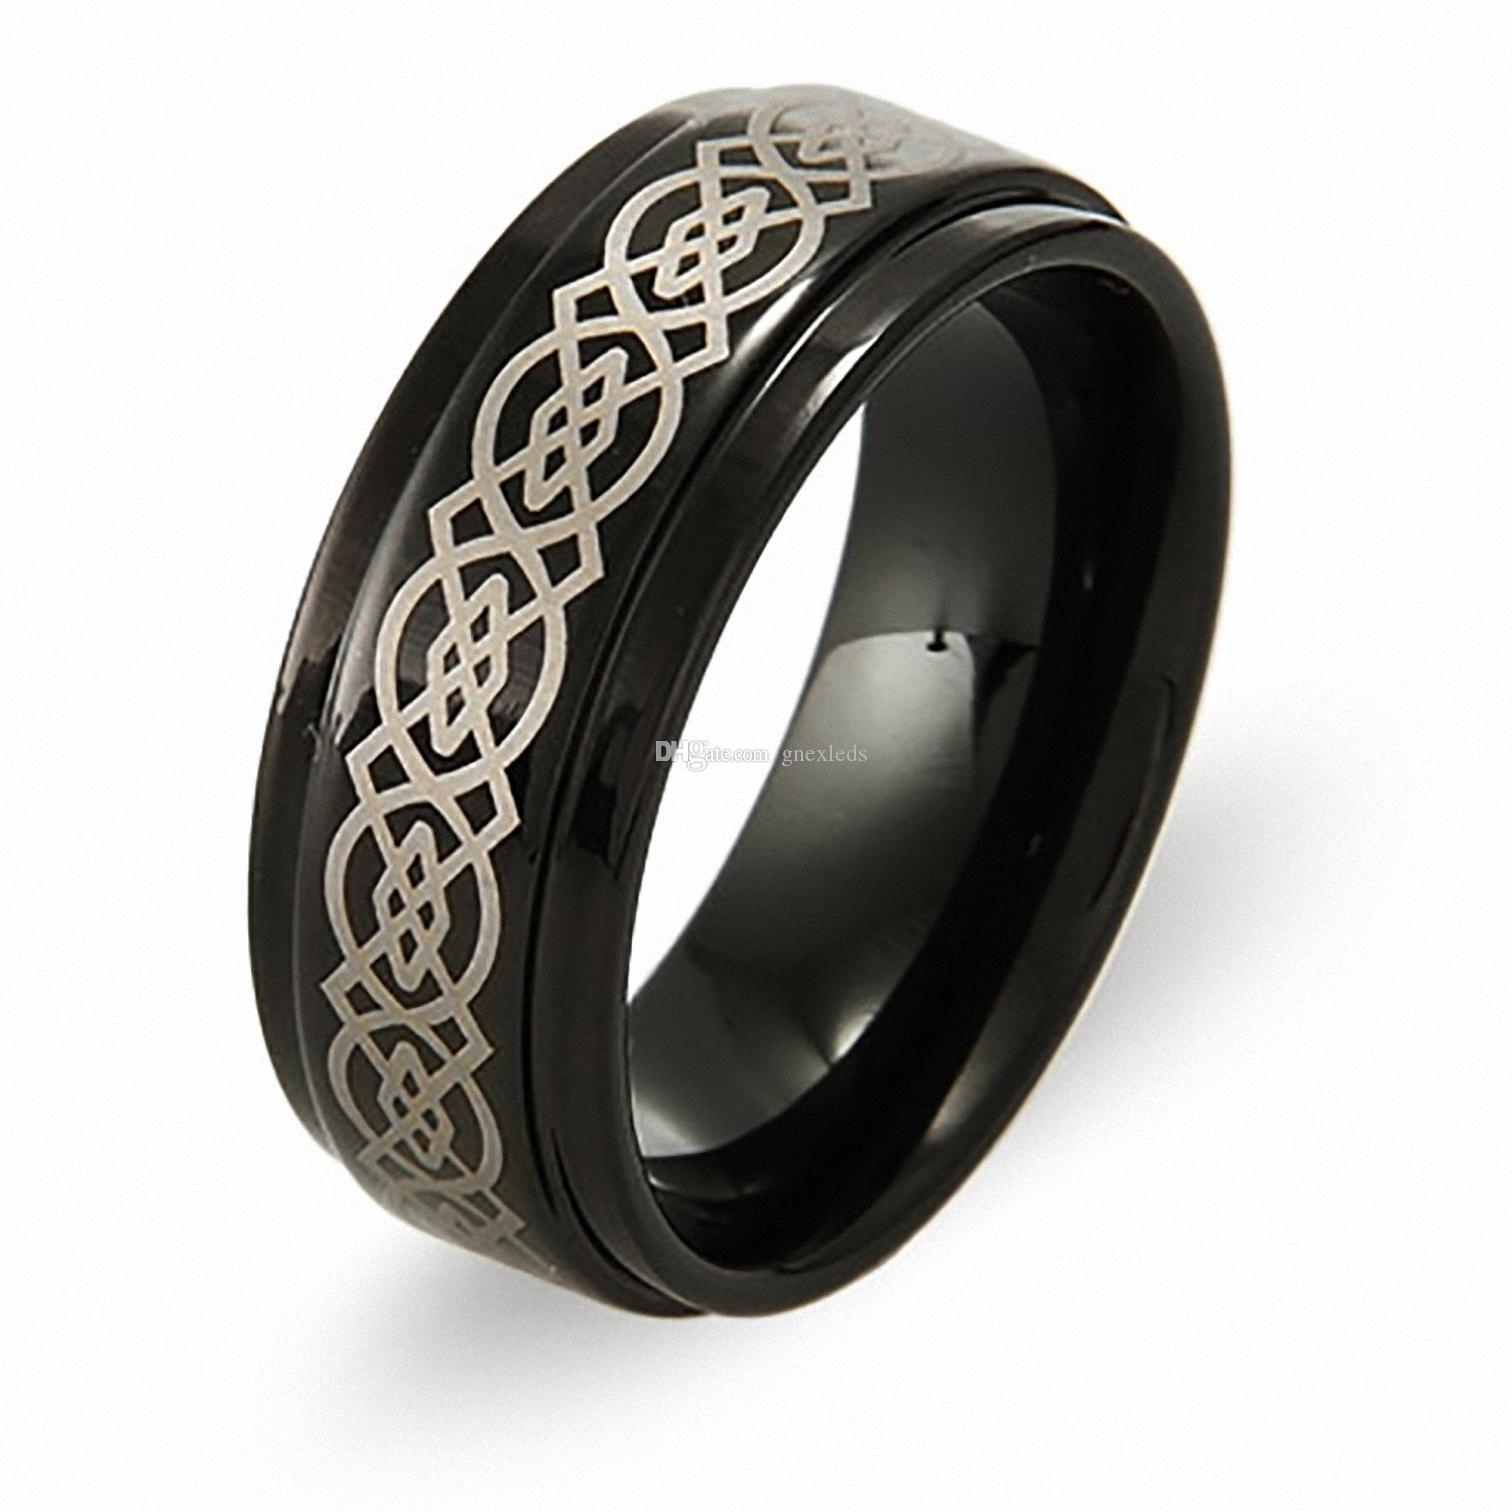 2018 Mens 8mm Irish Black Tungsten Wedding Bands Celtic Design With Regard To Most Recently Released Tungsten Wedding Bands (View 15 of 15)